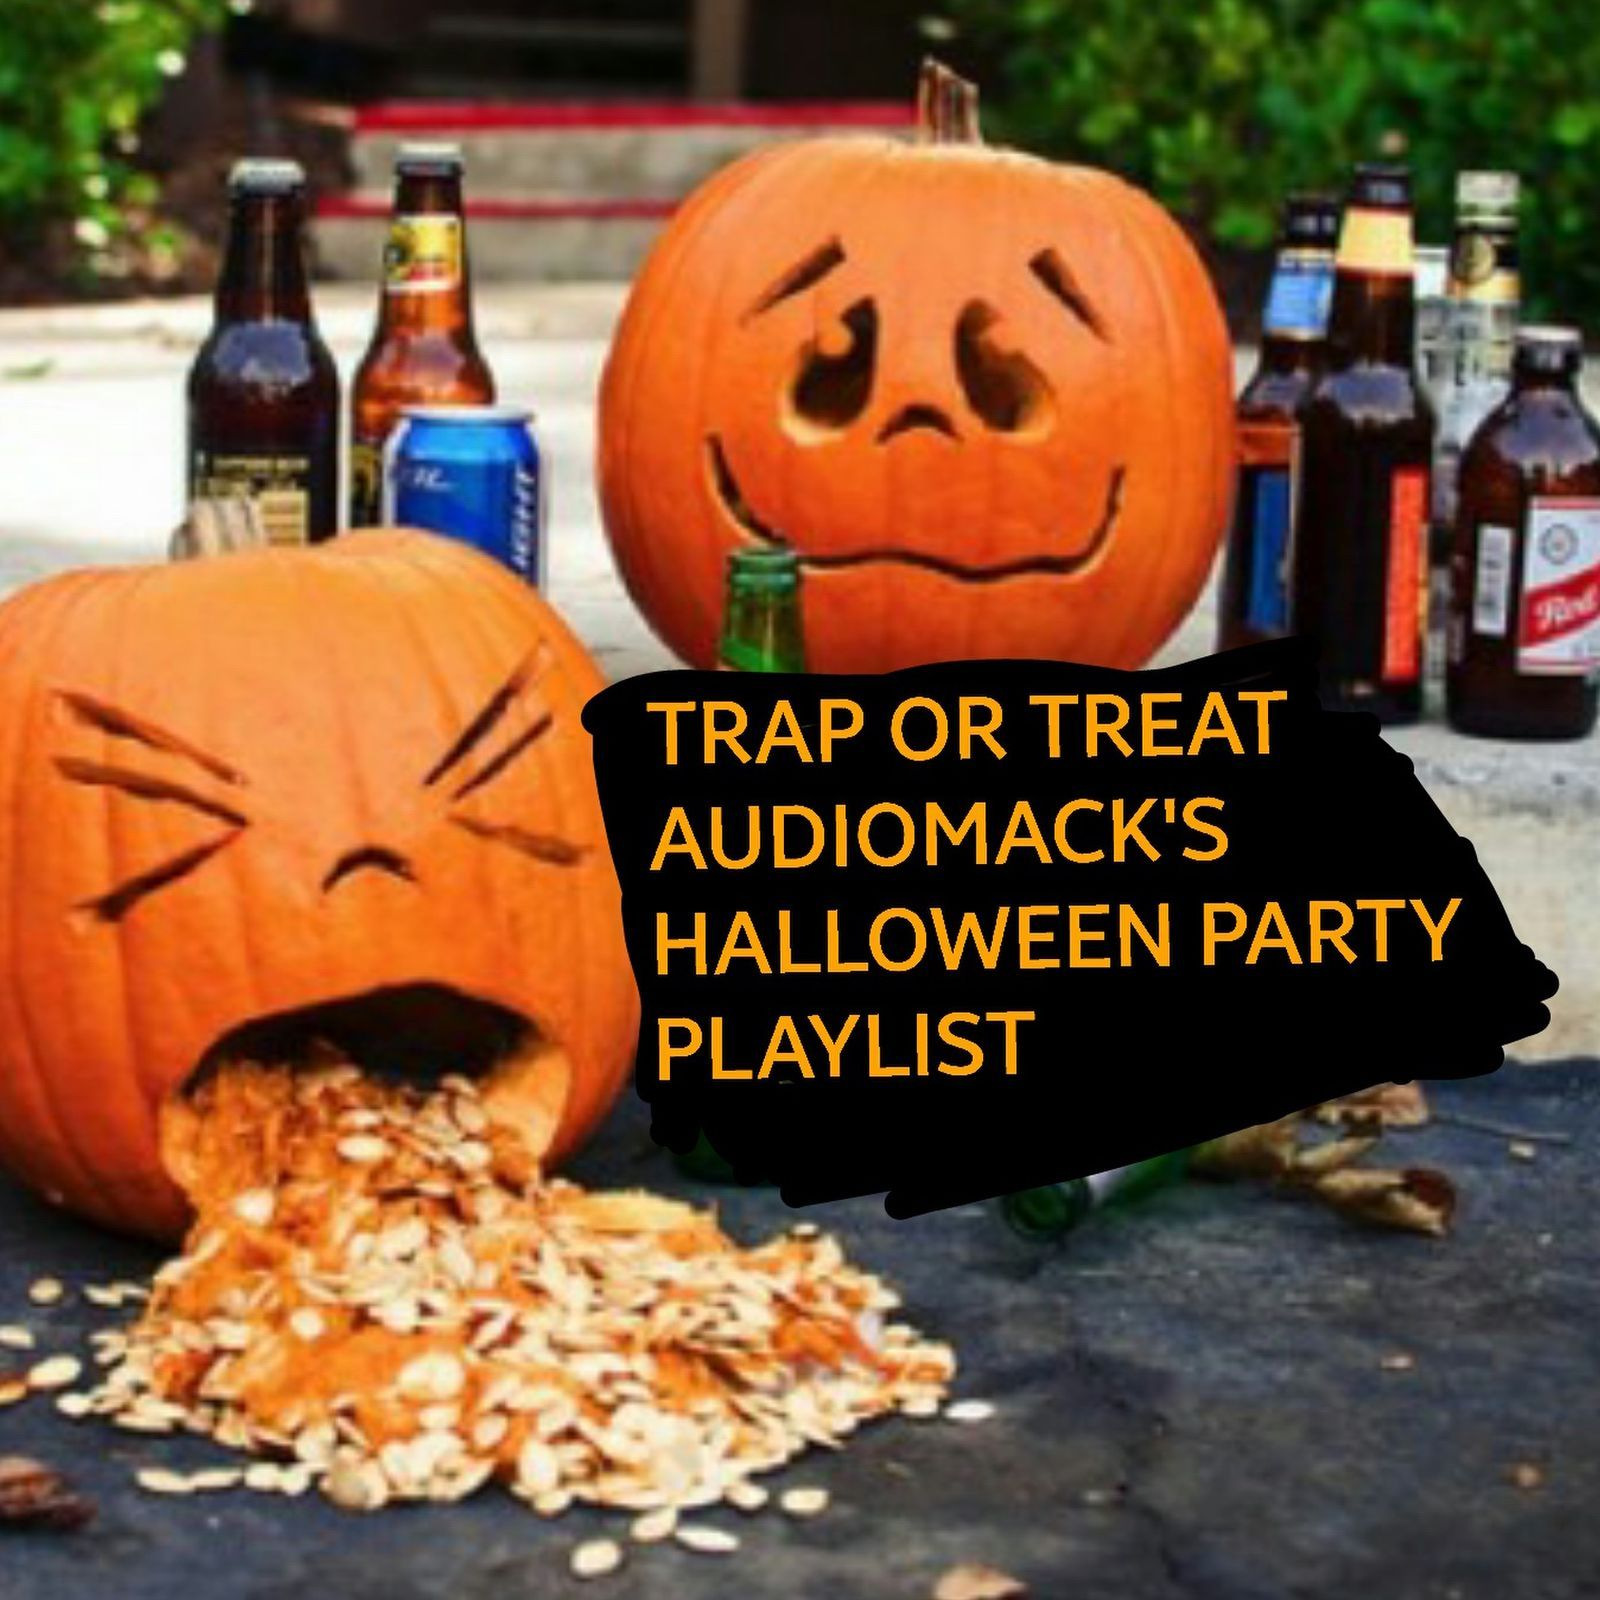 Trap Or Treat! Audiomack's Halloween Party Playlist